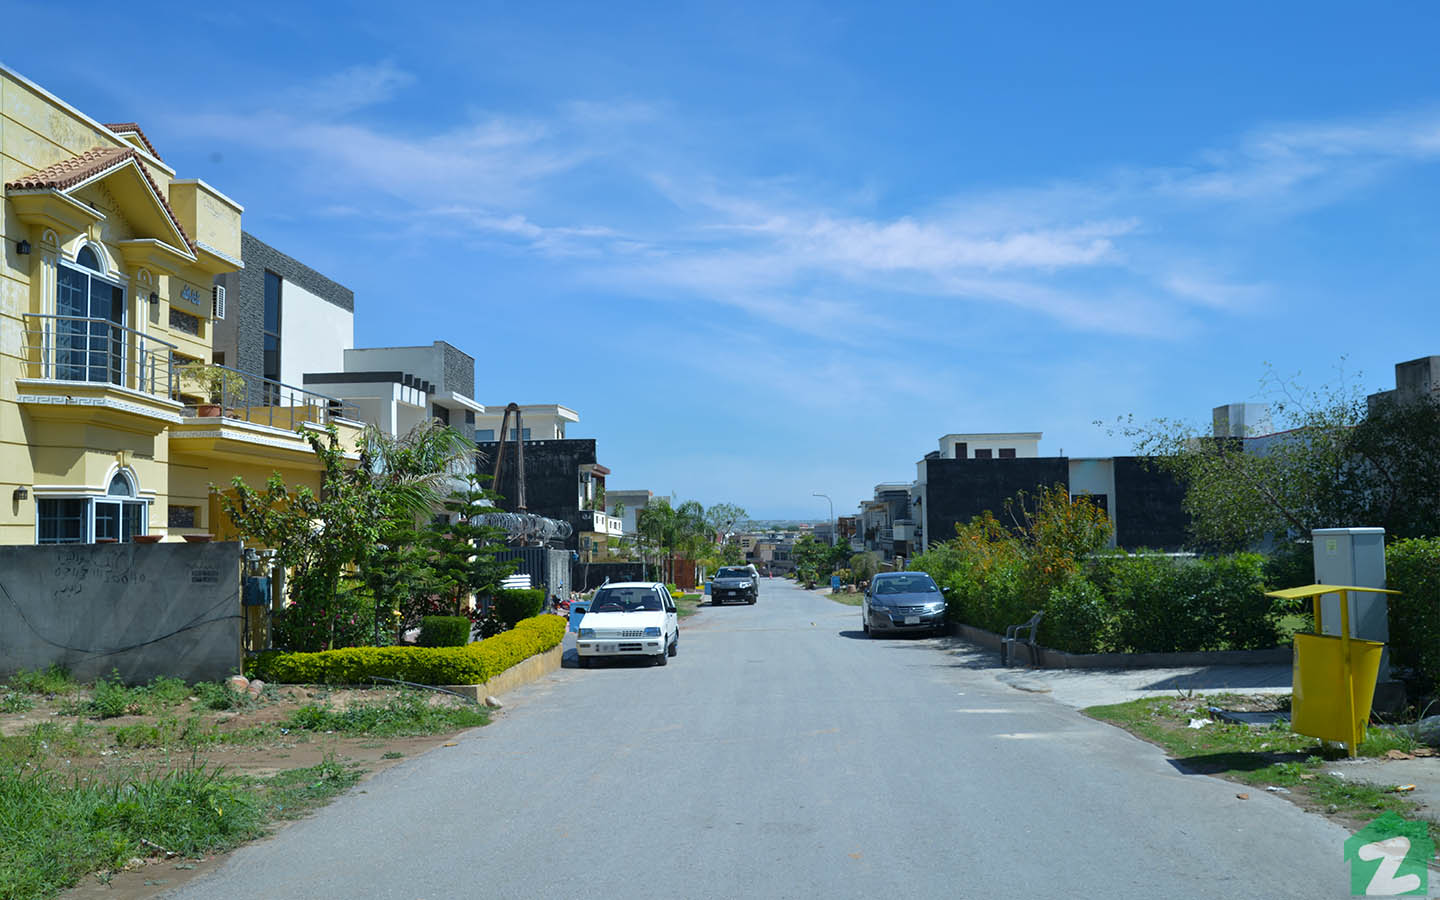 Street view of houses in Media Town